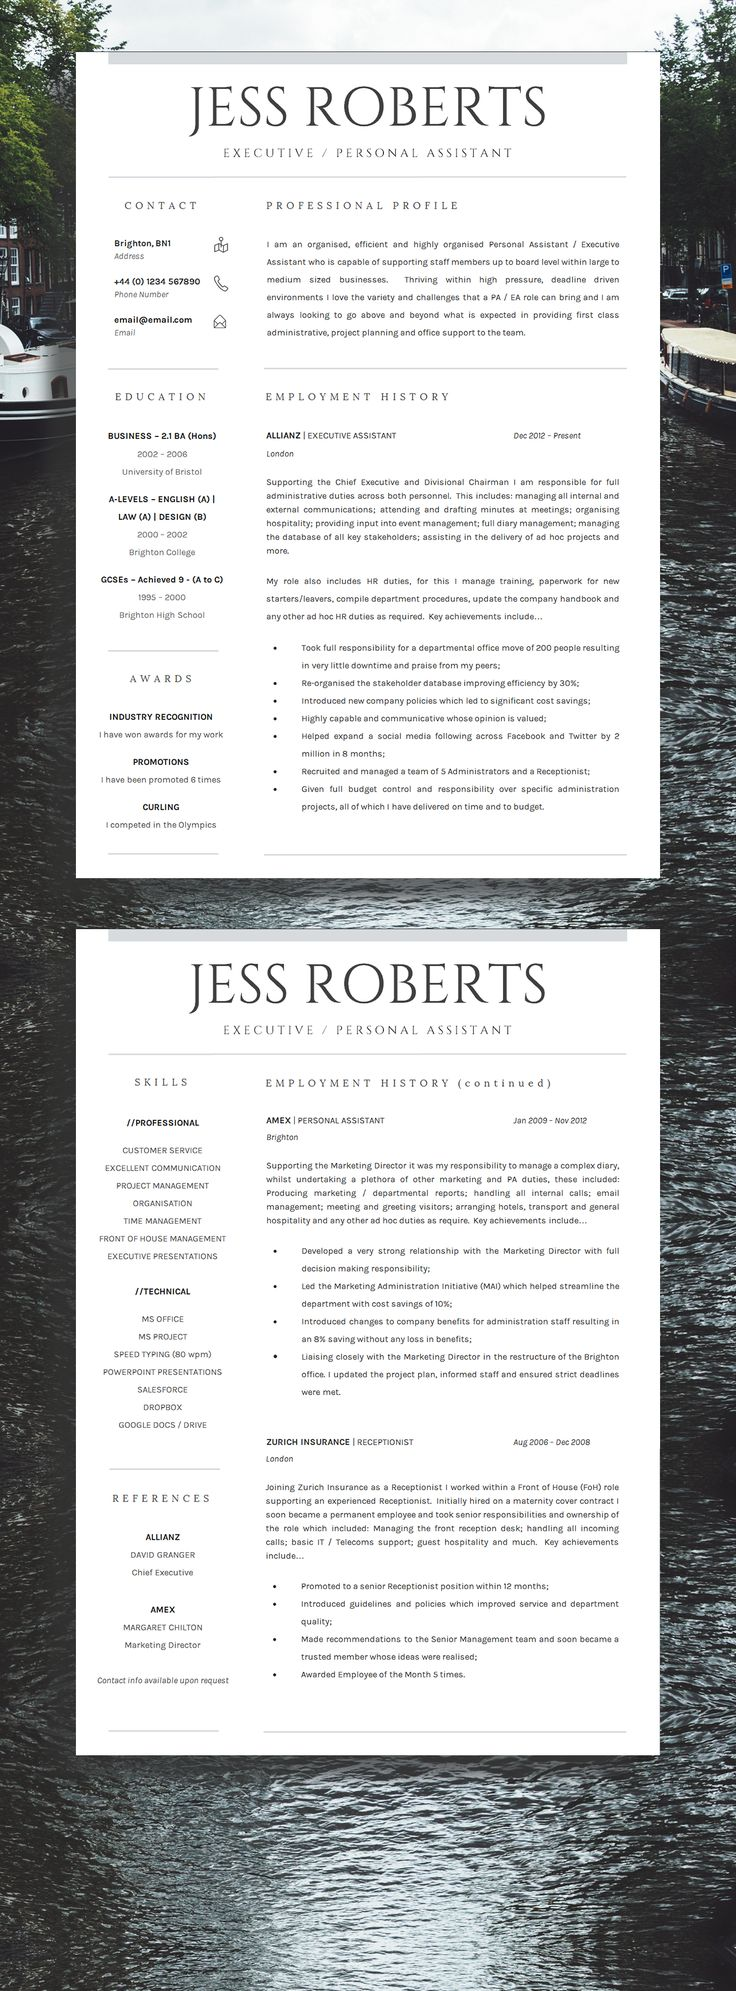 best ideas about resume templates resume resume professional curriculum vitae professional cv resume template for ms word cover letter mac or pc newgate